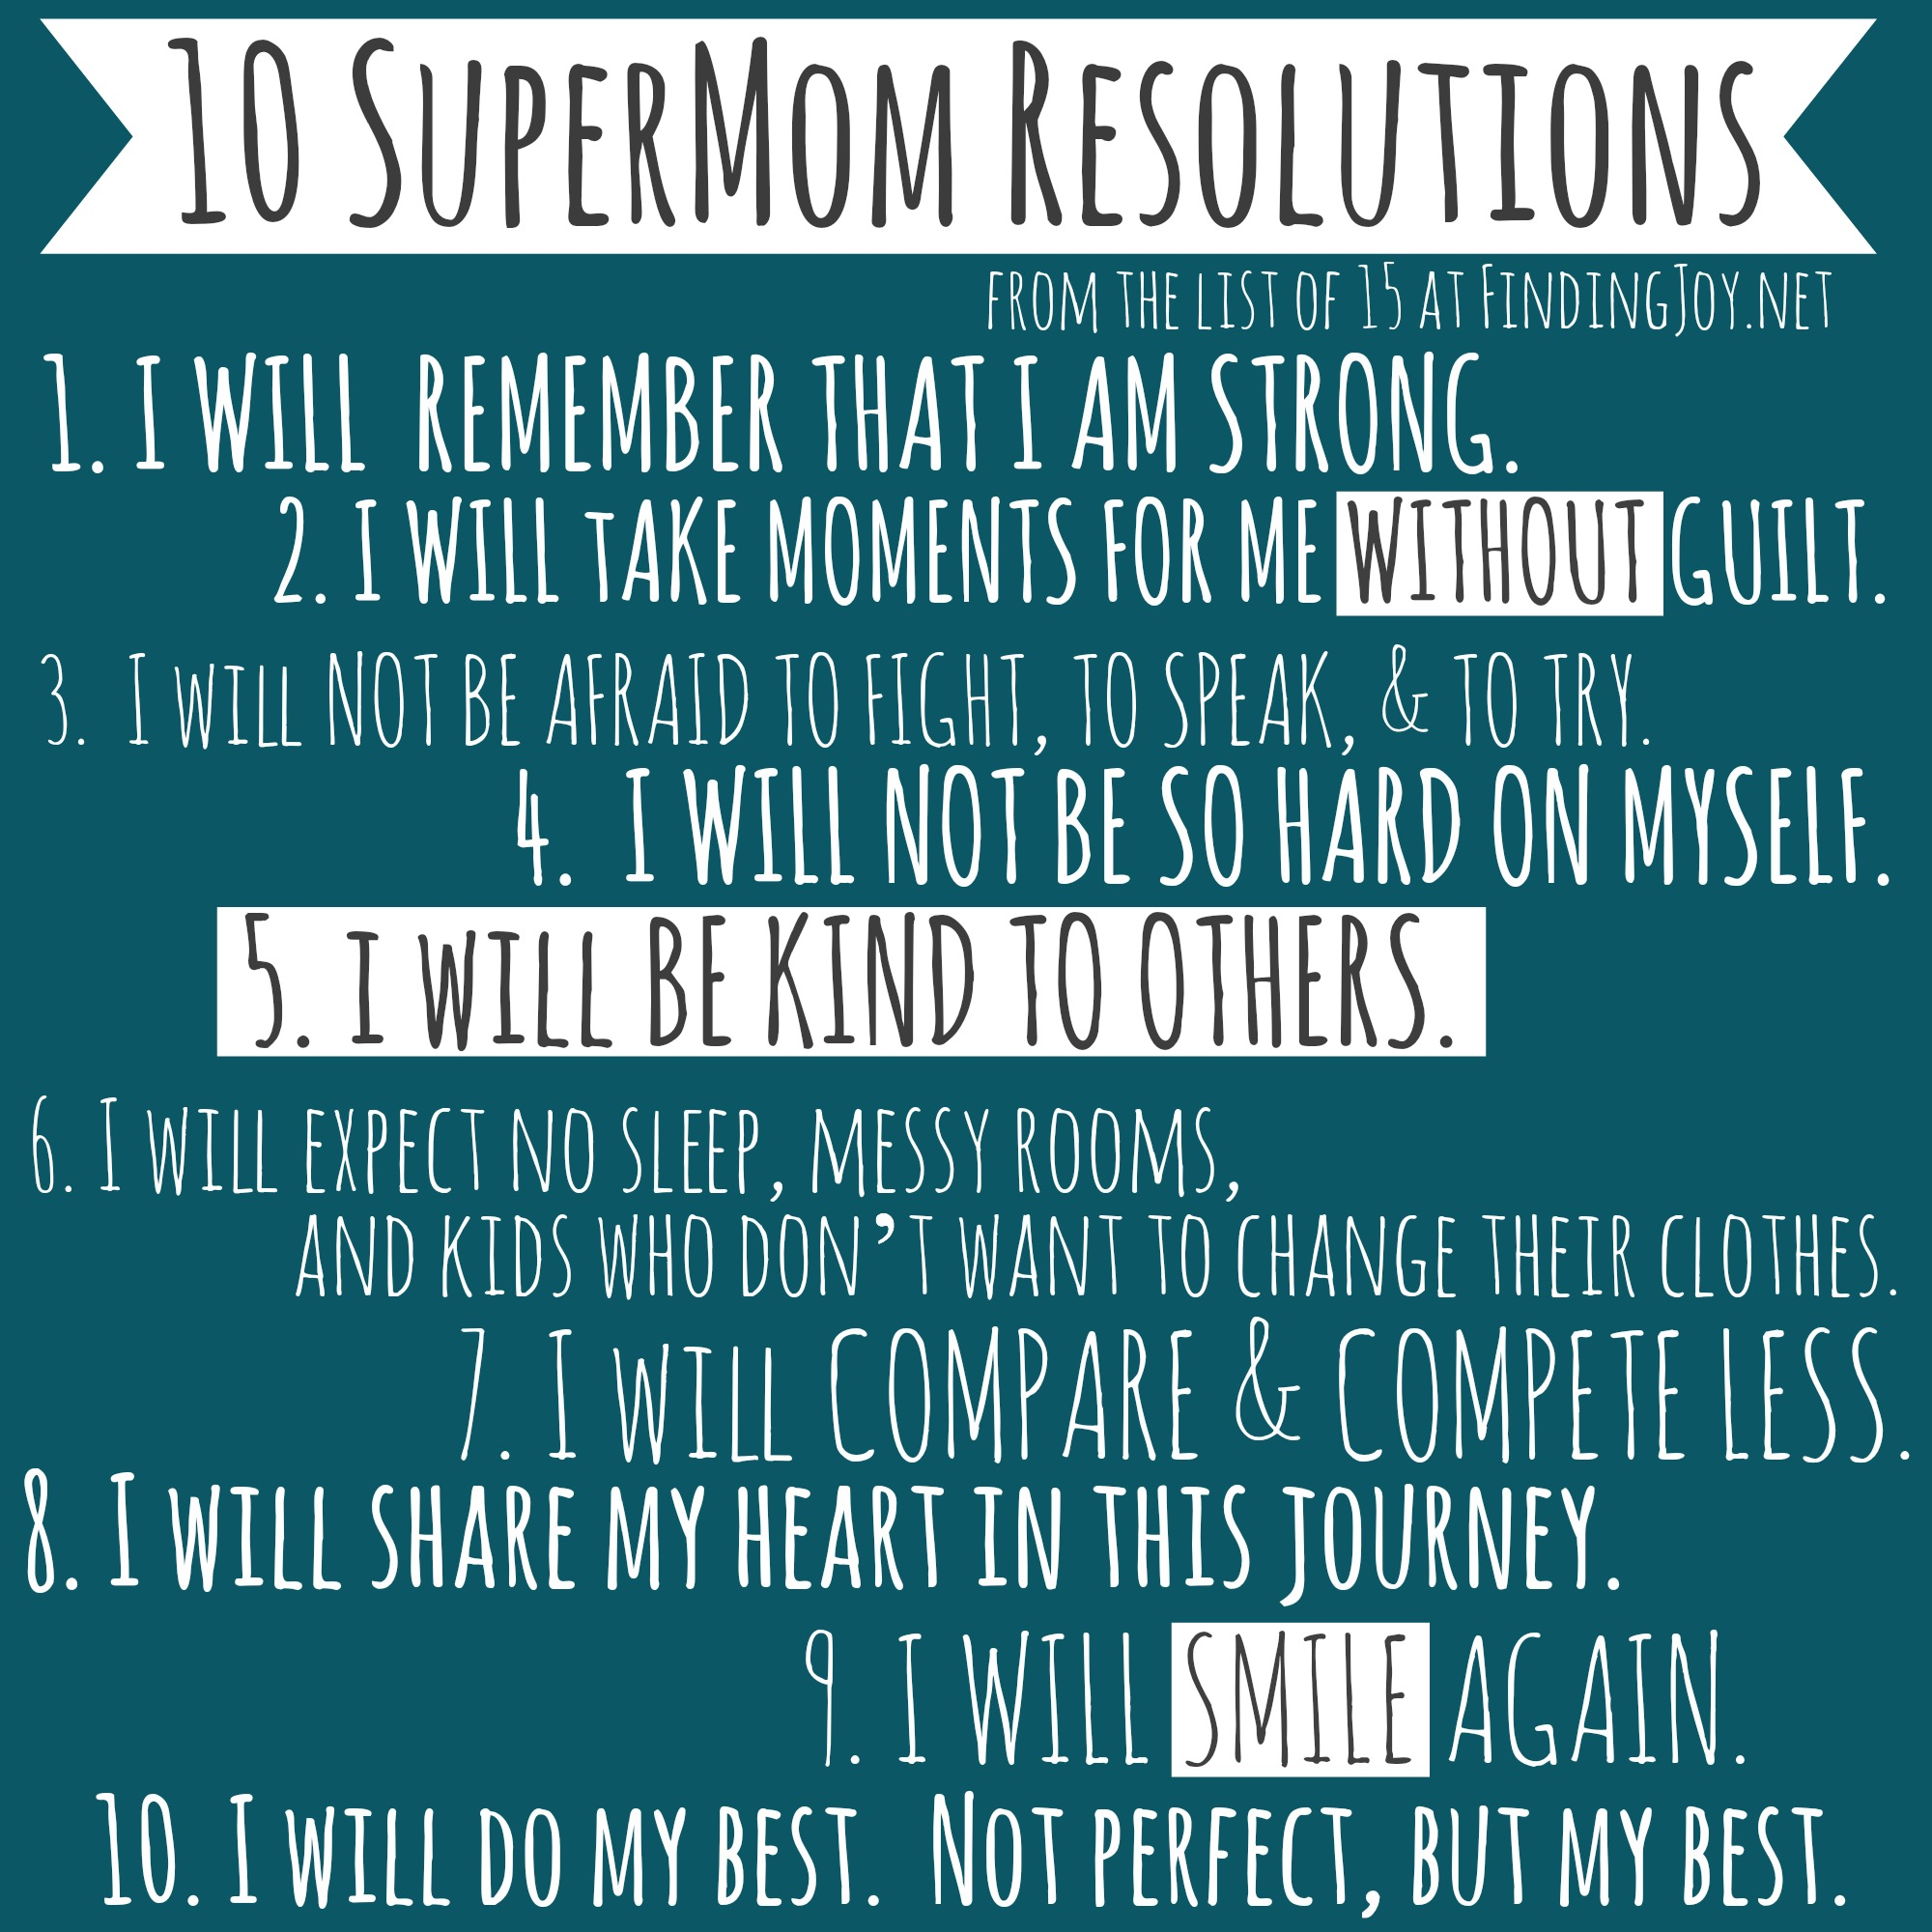 10SuperMomResolutions